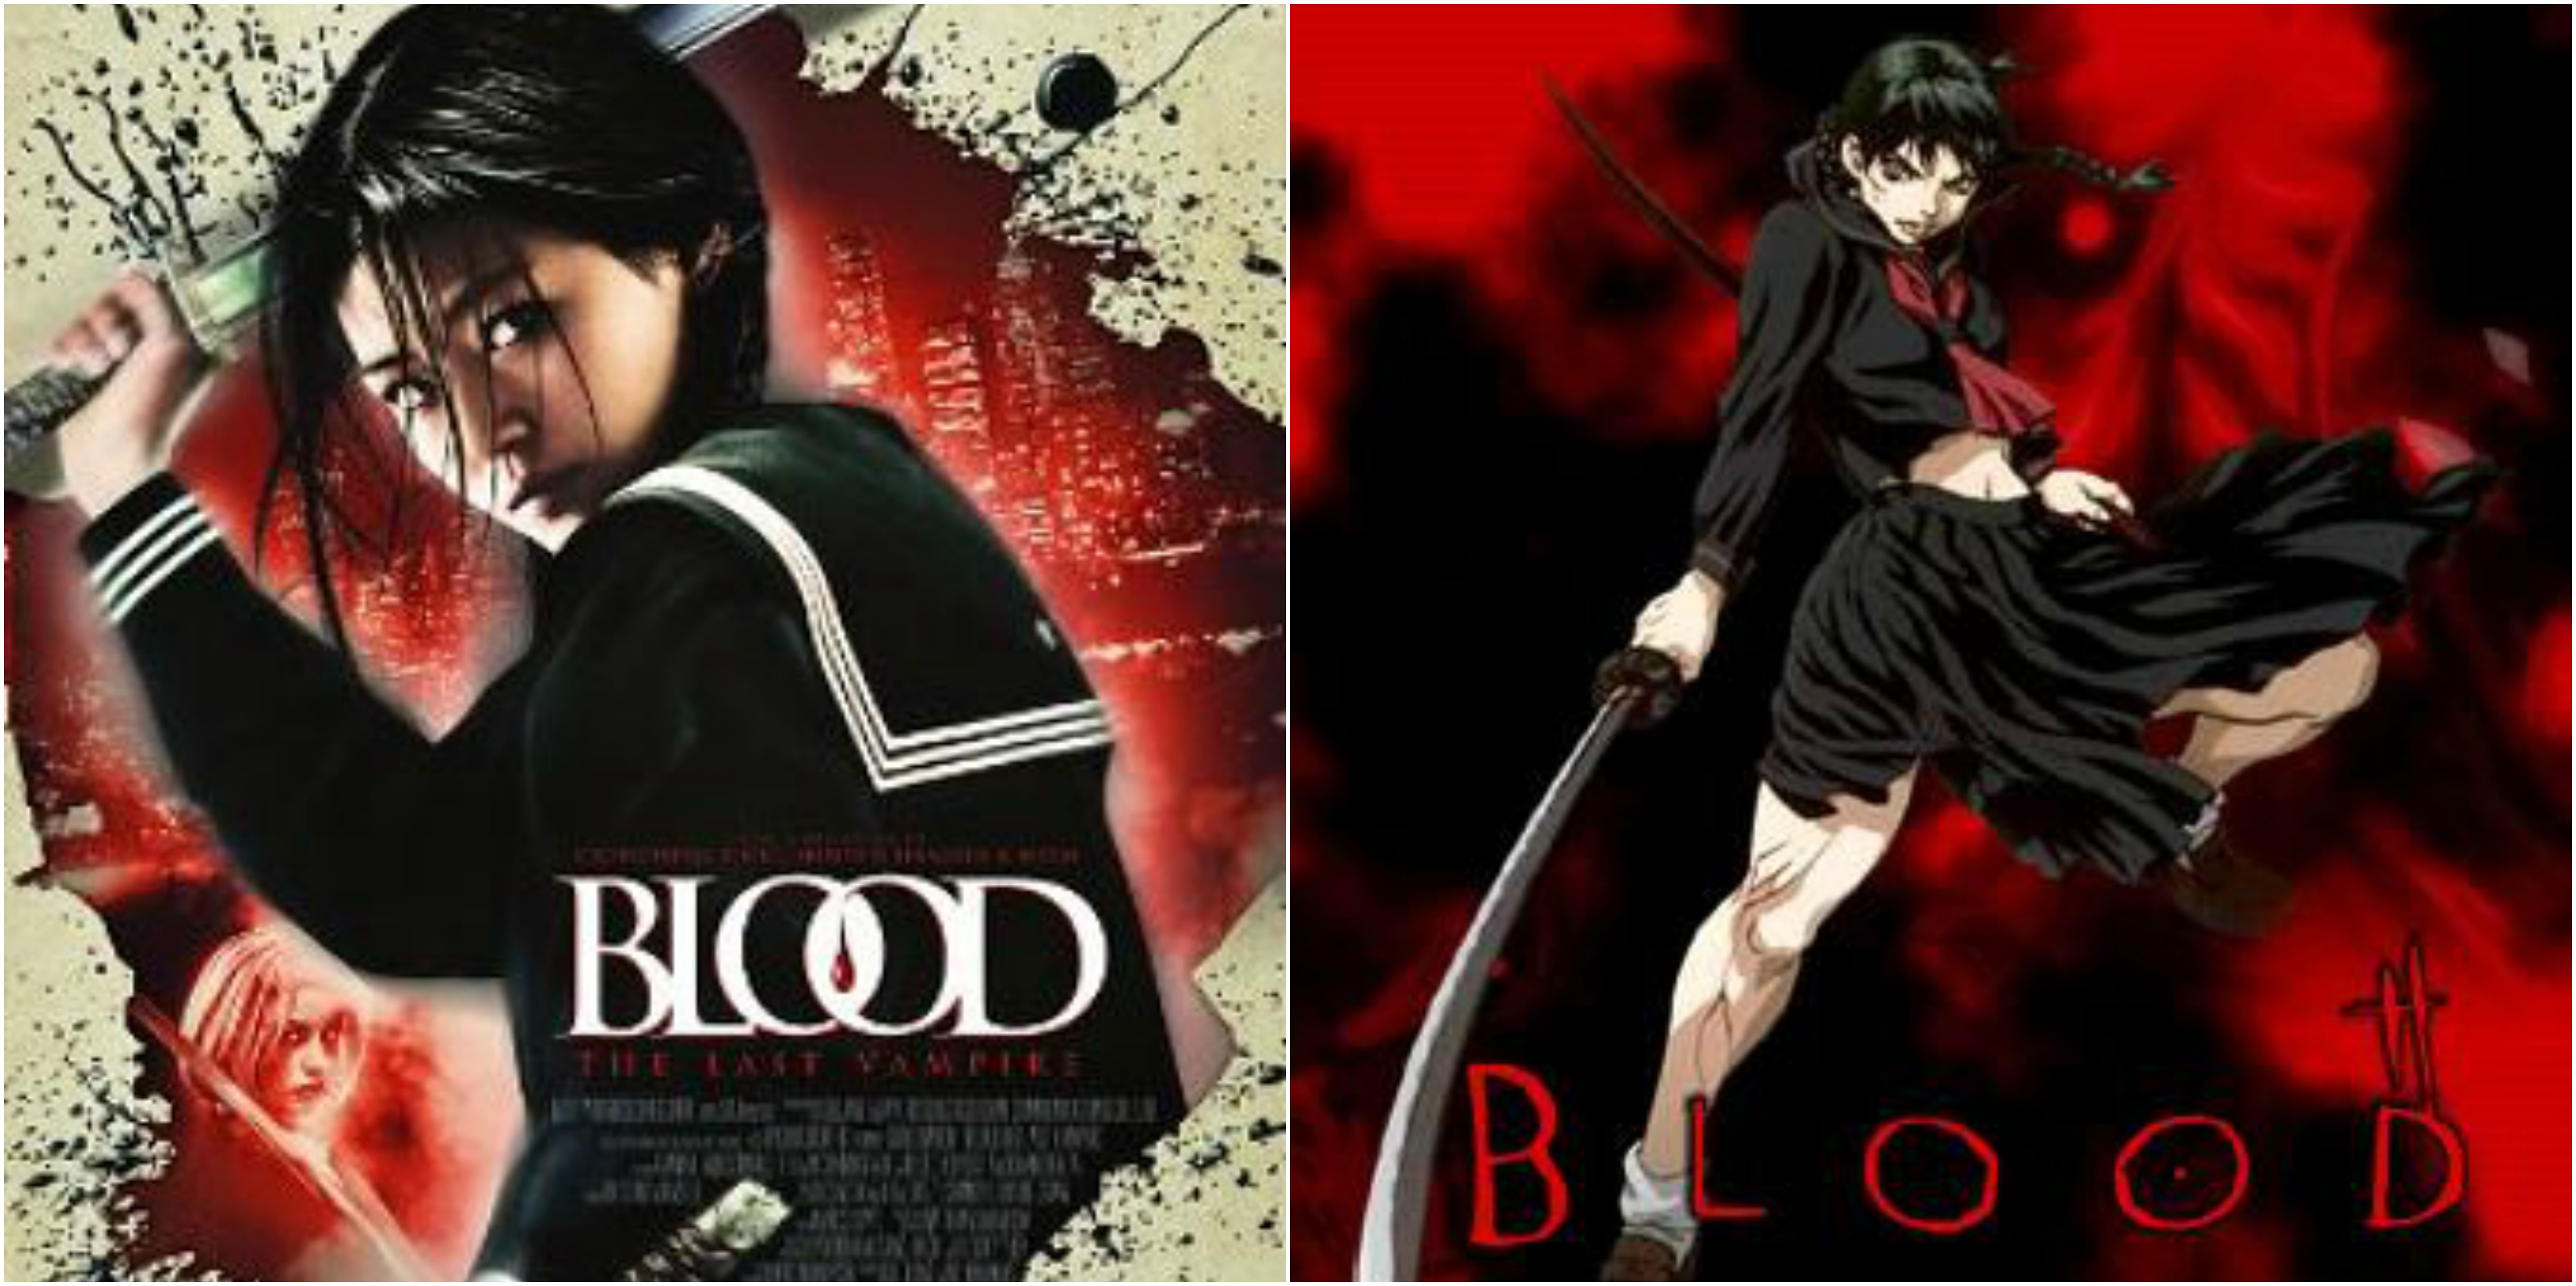 Blood The Last Vampire